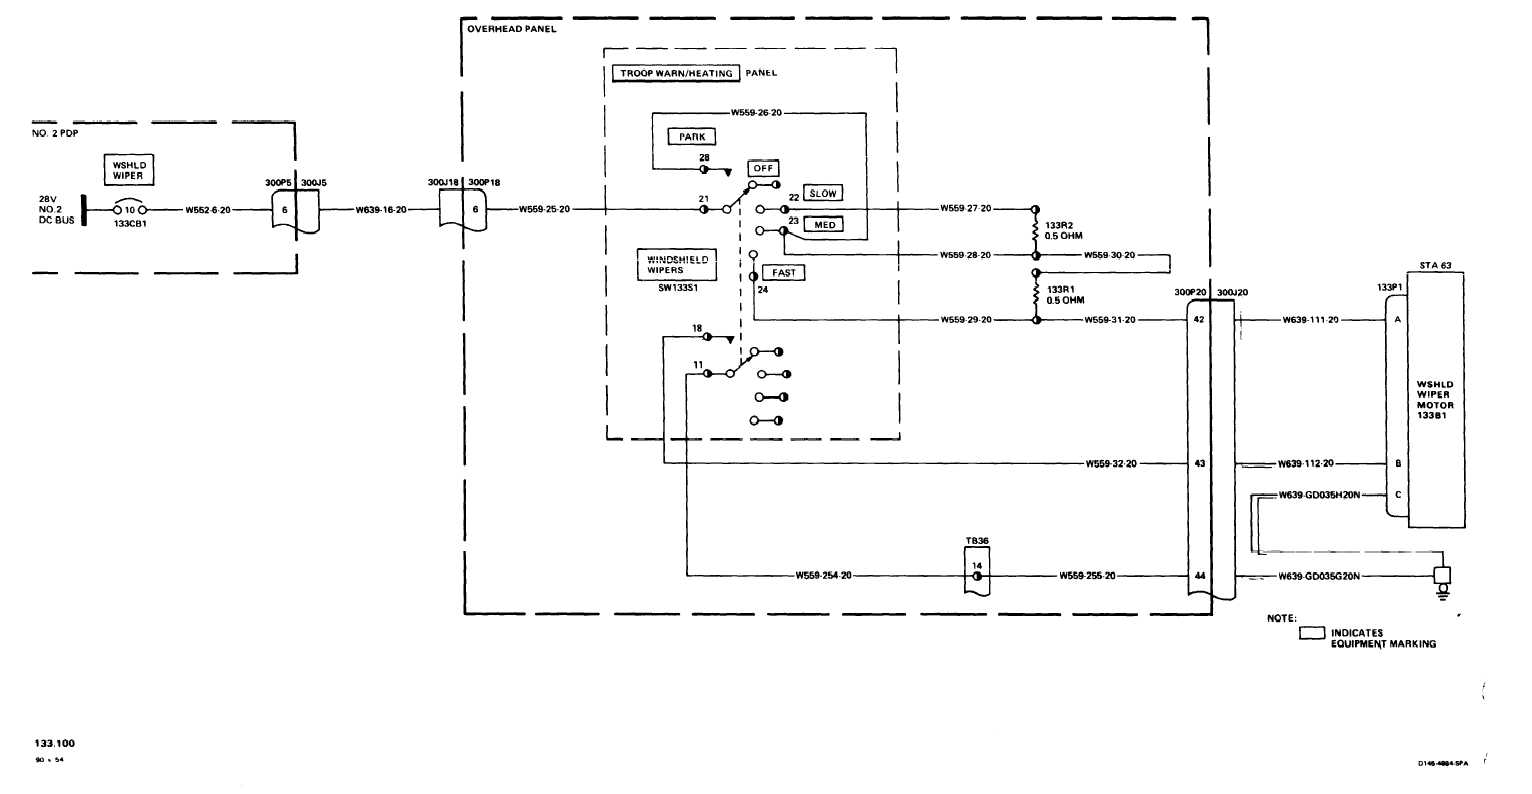 similiar wiper switch diagram keywords windshield wipers 12 4 12 4 1 12 4 1 windshield wipers wiring diagram